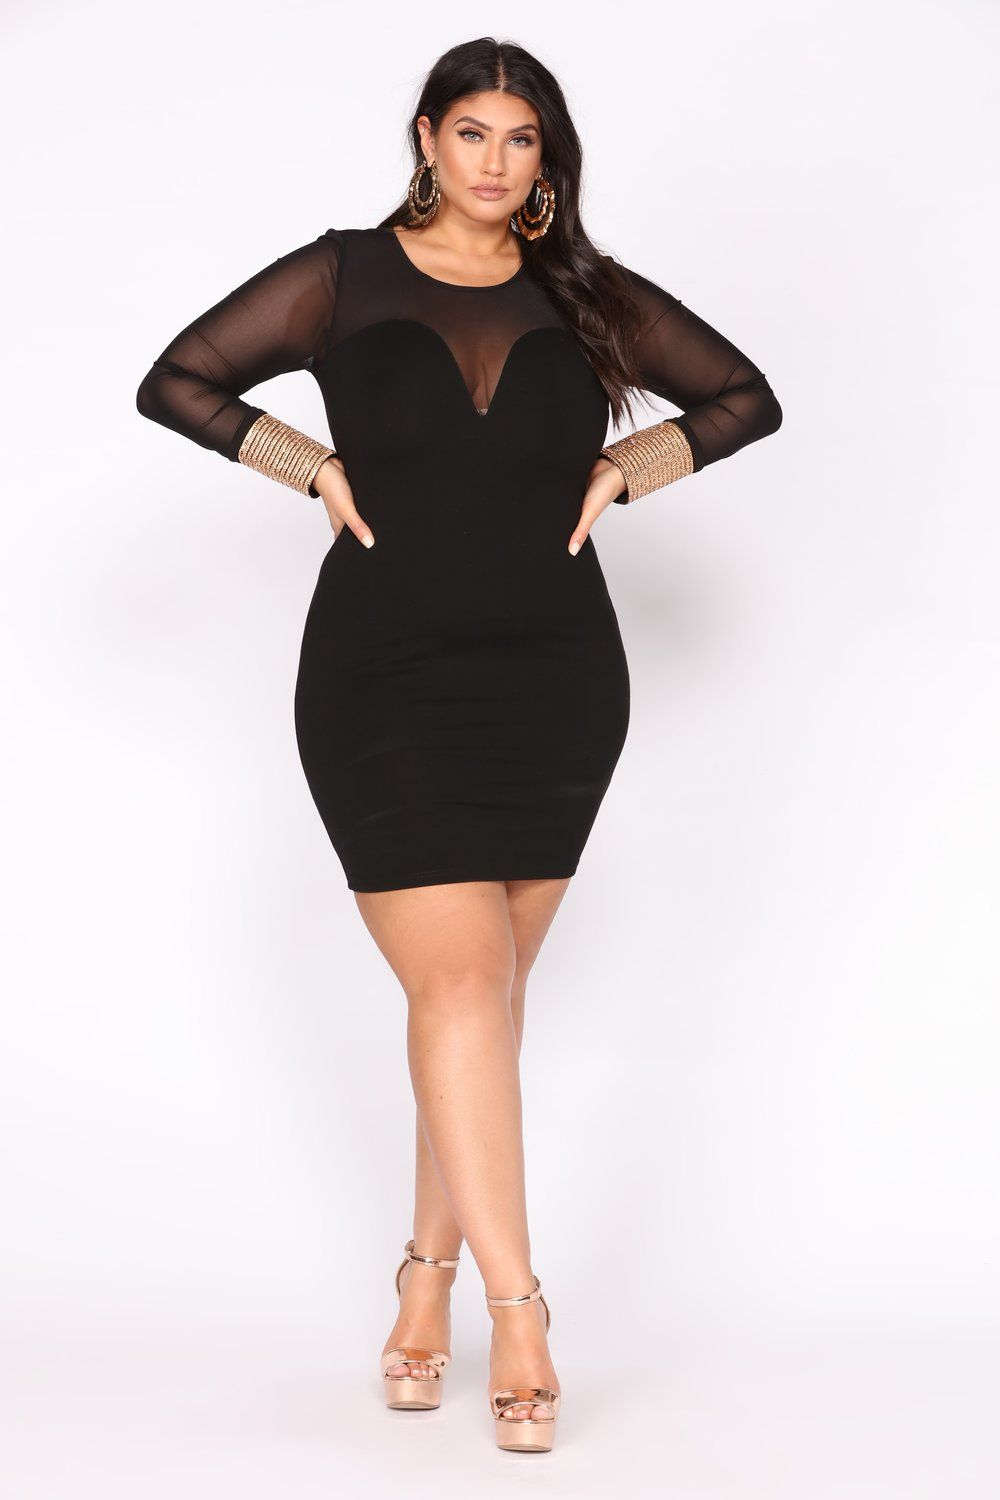 d09bfb317db Talk To Me Mesh Dress - Black